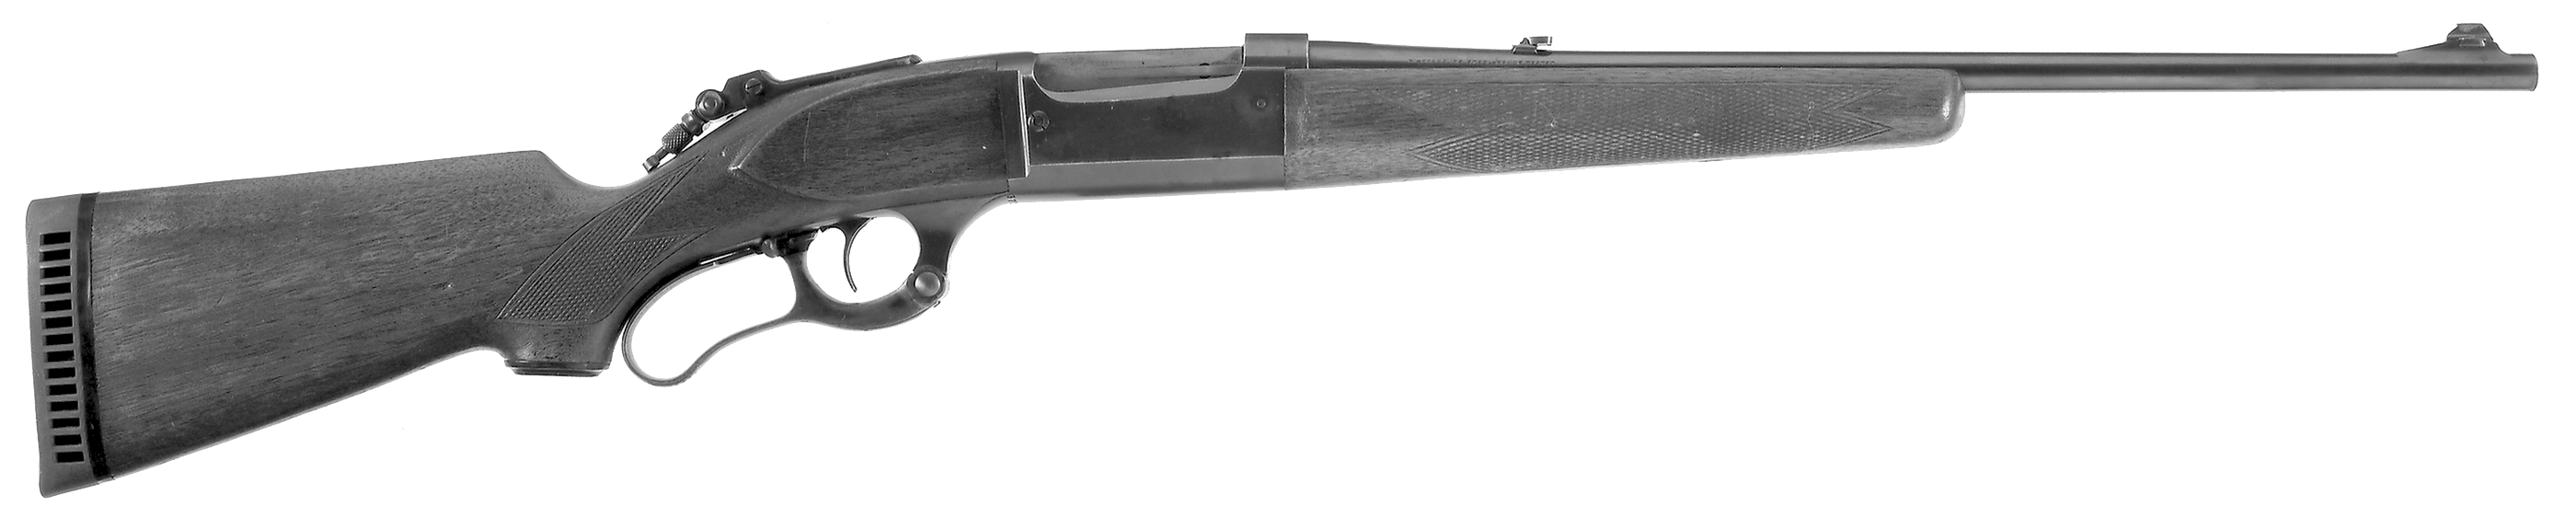 Model 99-T Deluxe Featherweight Rifle